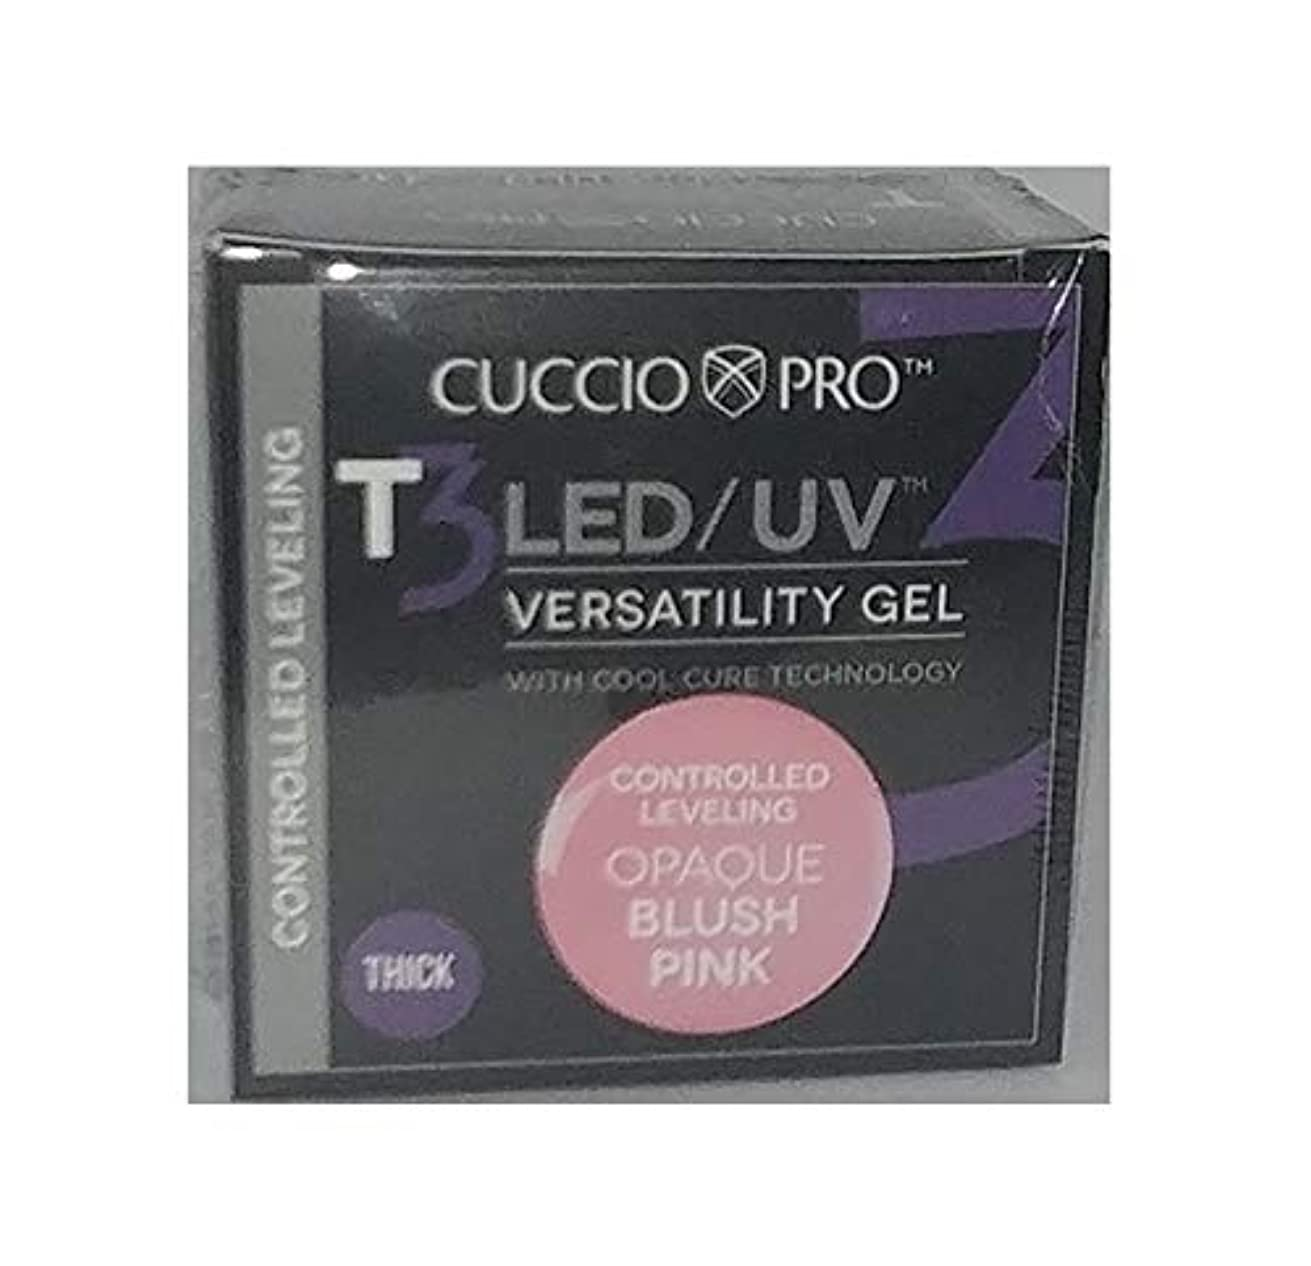 敬接続詞充電Cuccio Pro - T3 LED/UV Gel - Controlled Leveling - Opaque Blush Pink - 1 oz / 28 g